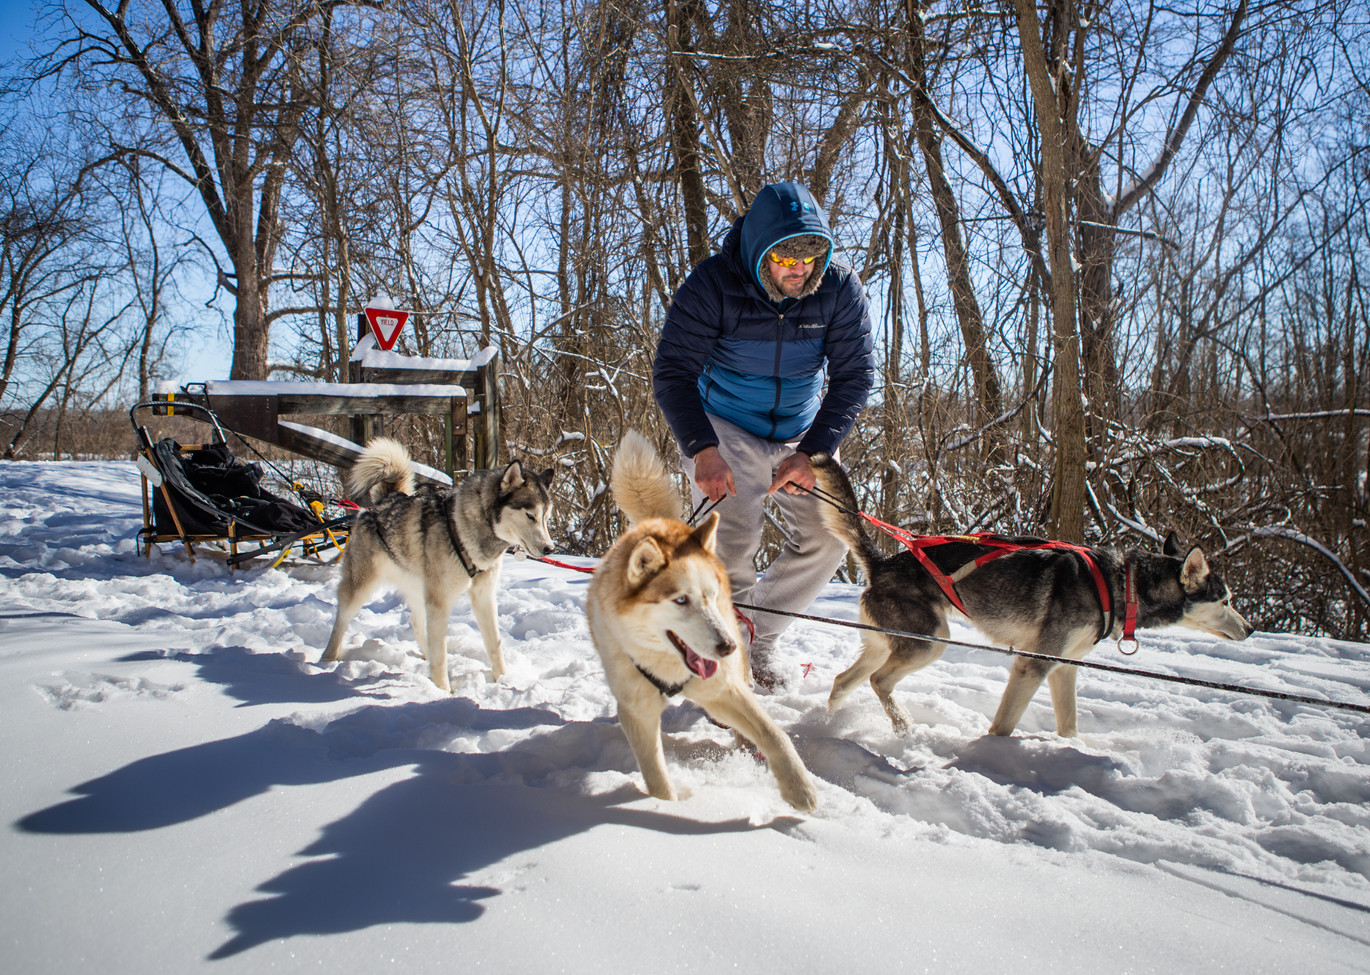 """Richie Camden gets his nine-dog sled team into their harnesses before a training run on the Katy Trail near Defiance, Missouri on Feb. 16, 2021. The past few weeks of snow have been a special treat for the team which runs """"dry-land"""" training when the ground isn't covered."""